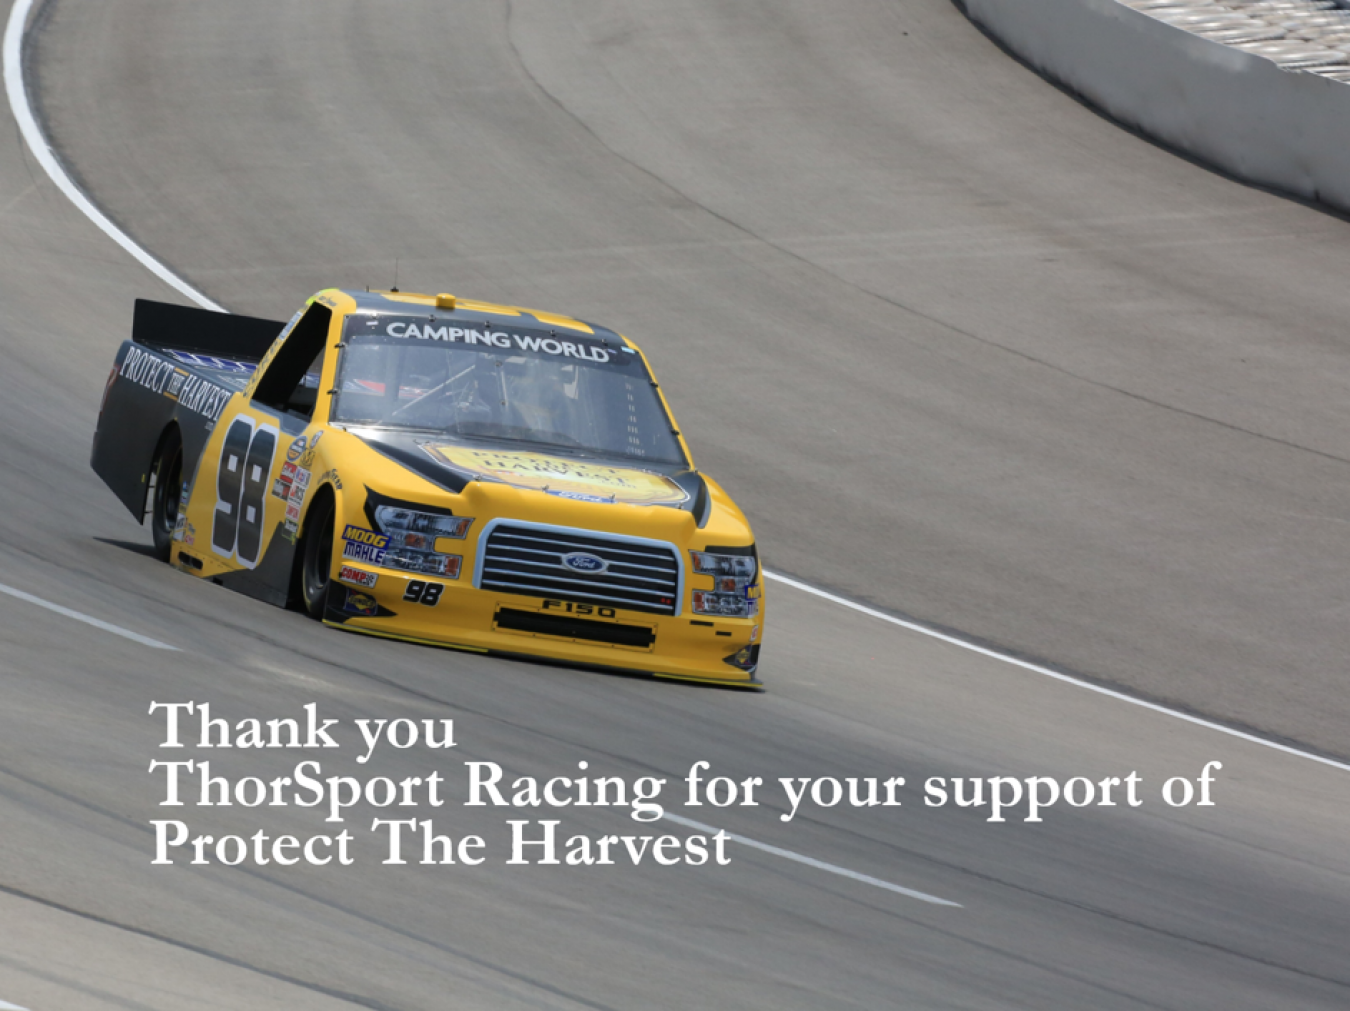 ThorSport Racing Supports Protect The Harvest